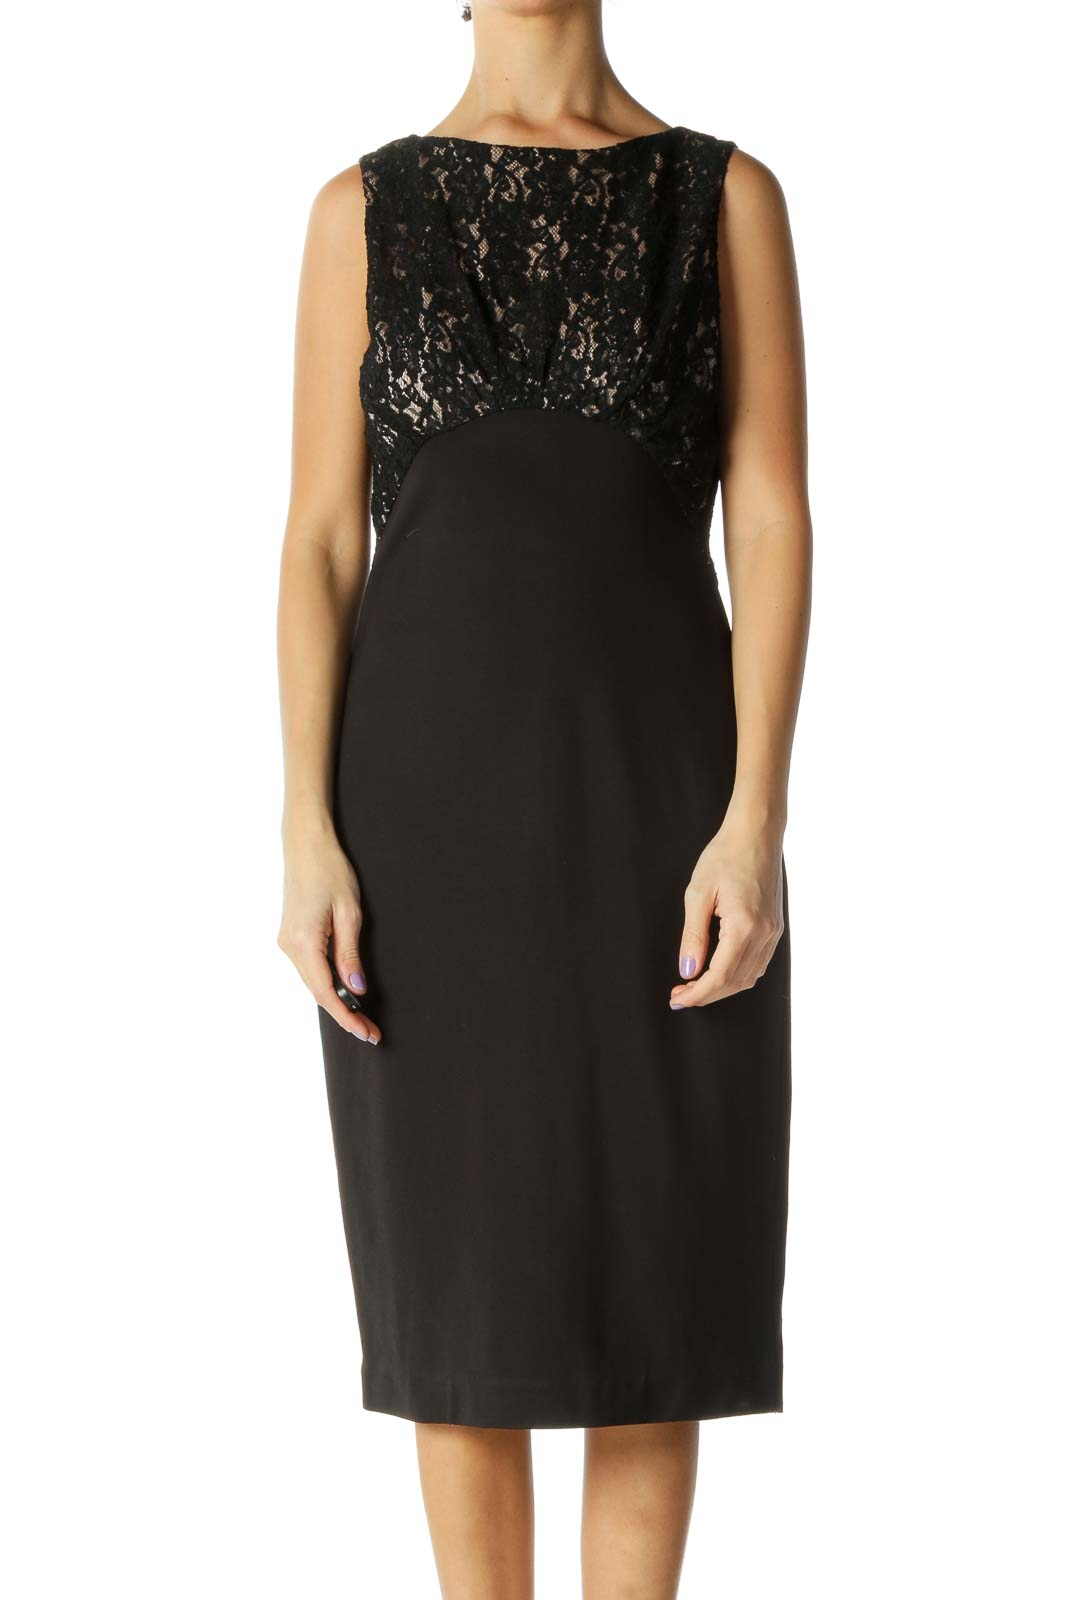 Black Beige Lace Work Dress Front